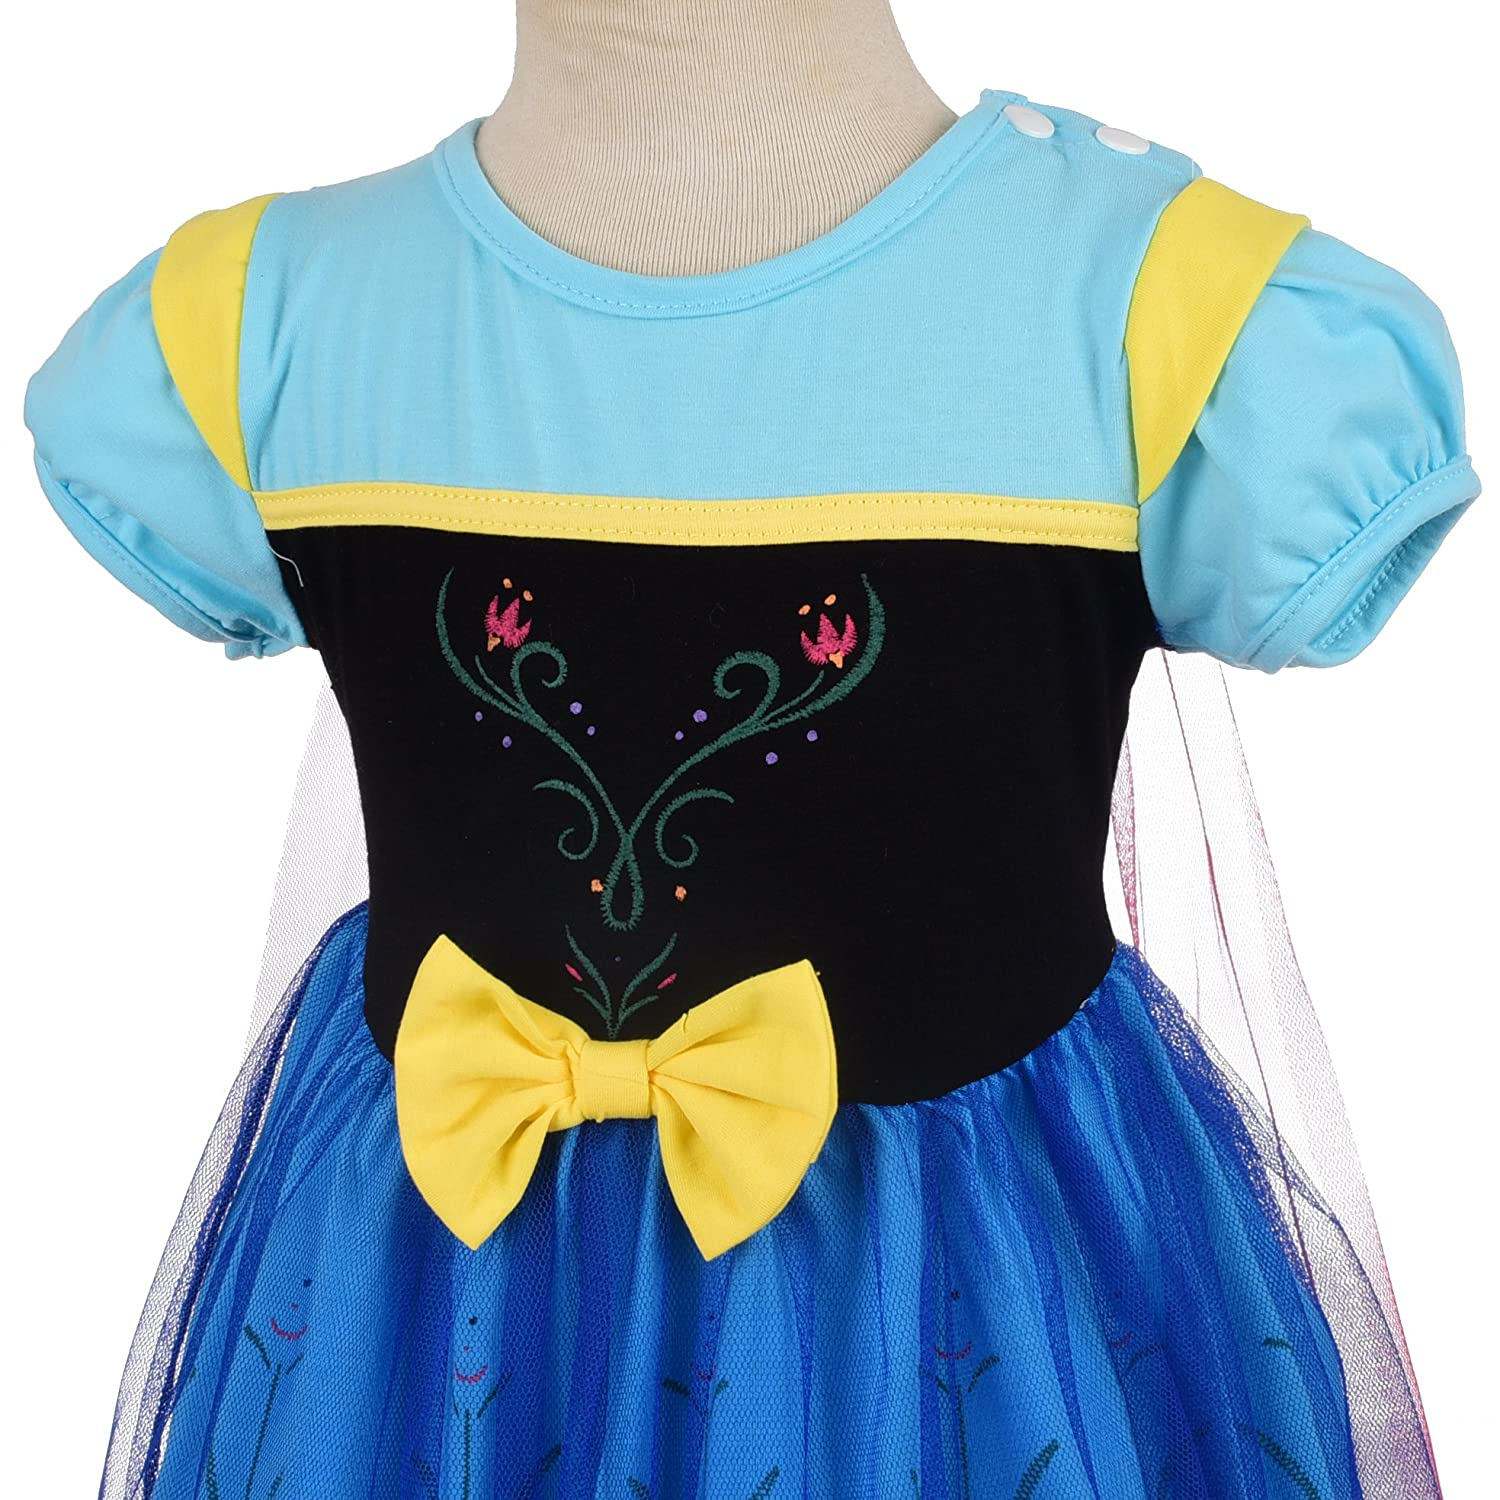 Lito Angels Little Girls Princess Anna Dress with Cape Fancy Halloween Costumes Party Dress Size 2-3 Years